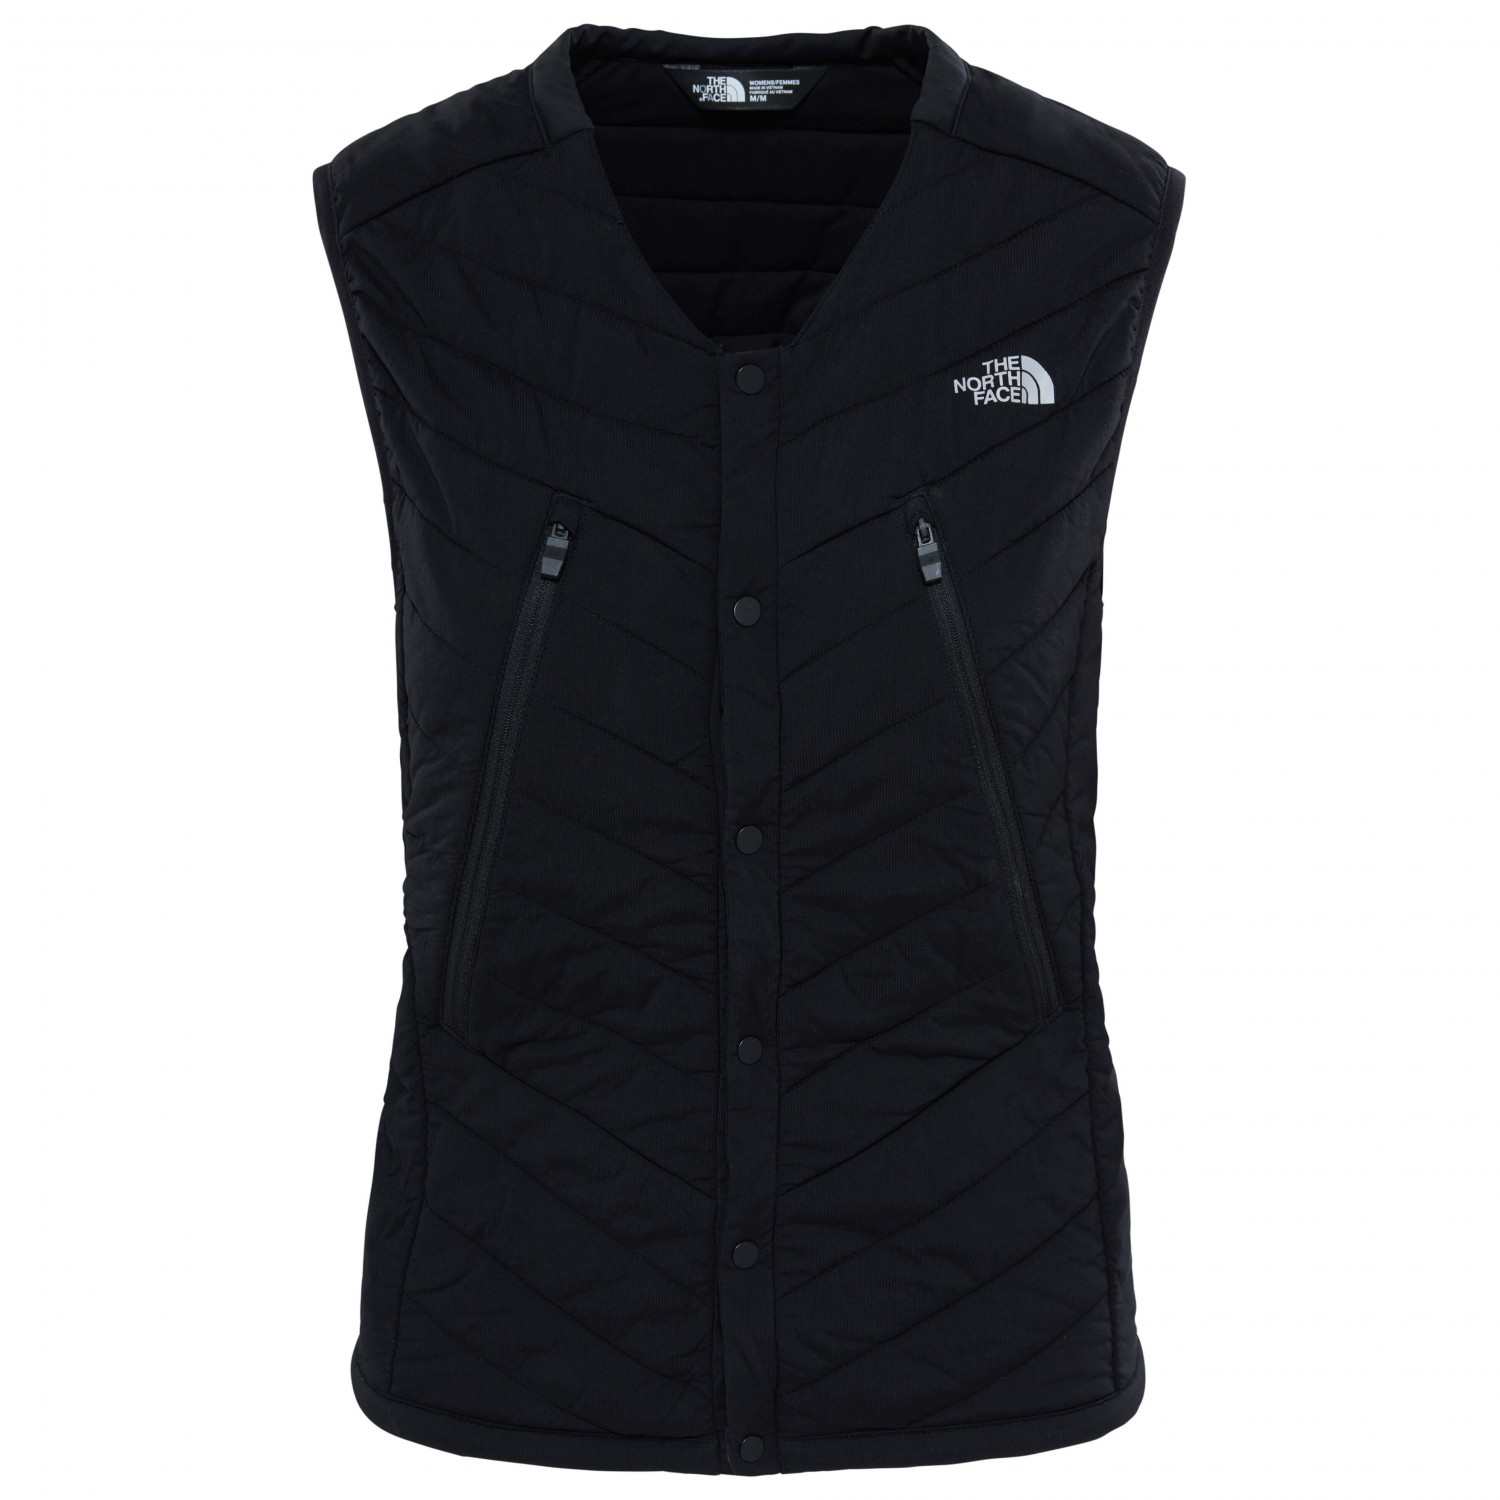 f0c3d7ba0 The North Face Purist Triclimate Jacket - Ski Jacket Women's | Buy ...